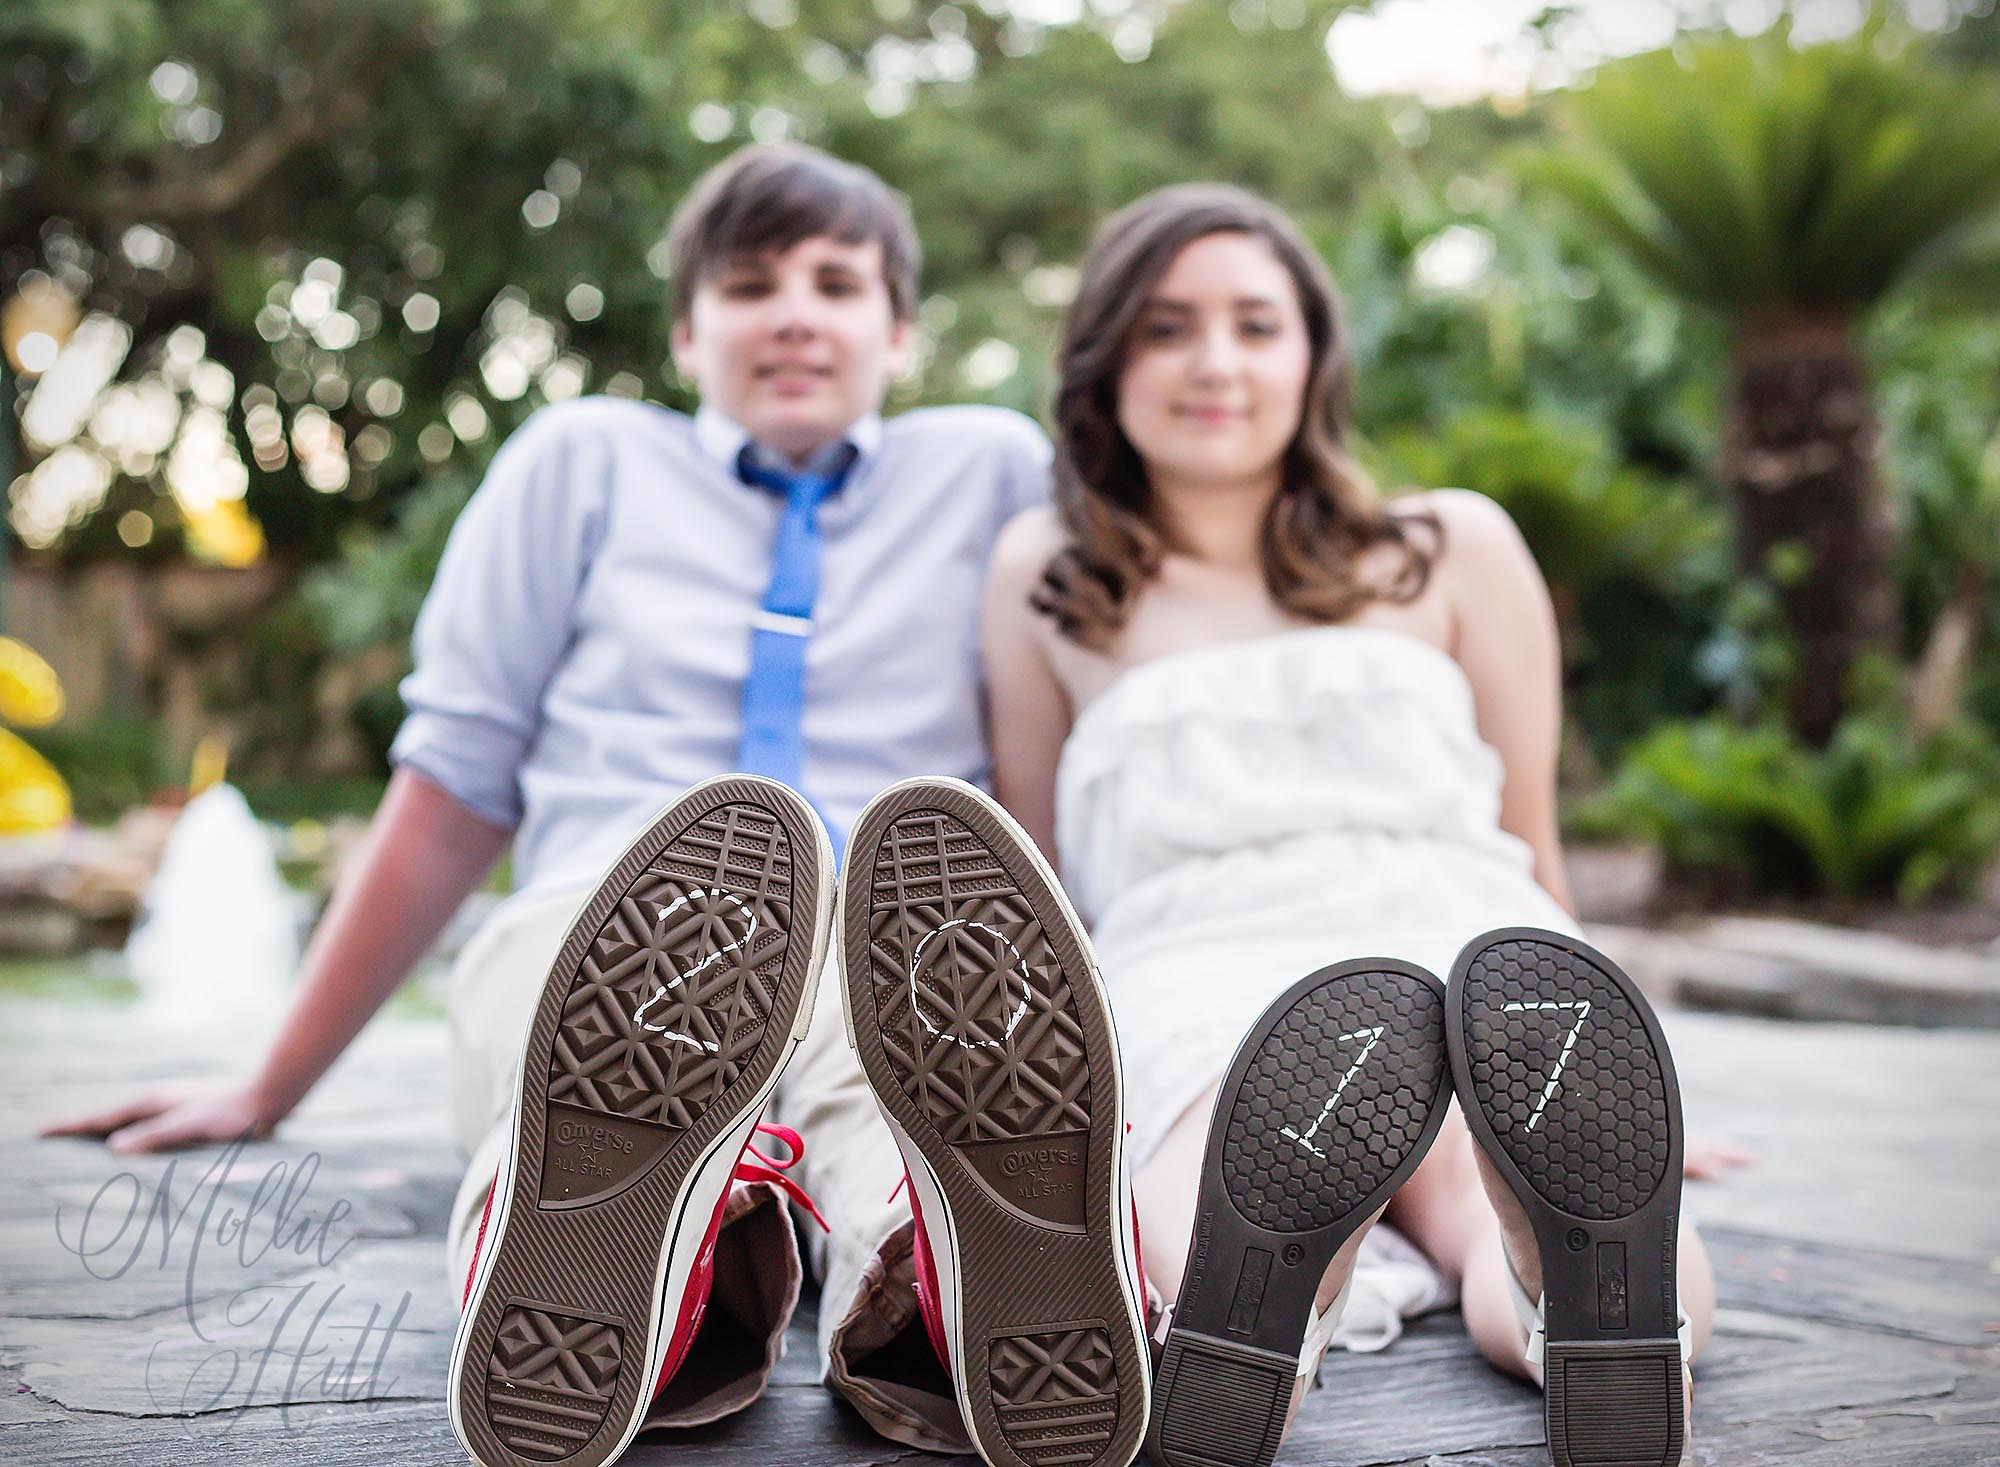 Boyfriend and girlfriend seniors with the year 2017 written on the soles of their shoes